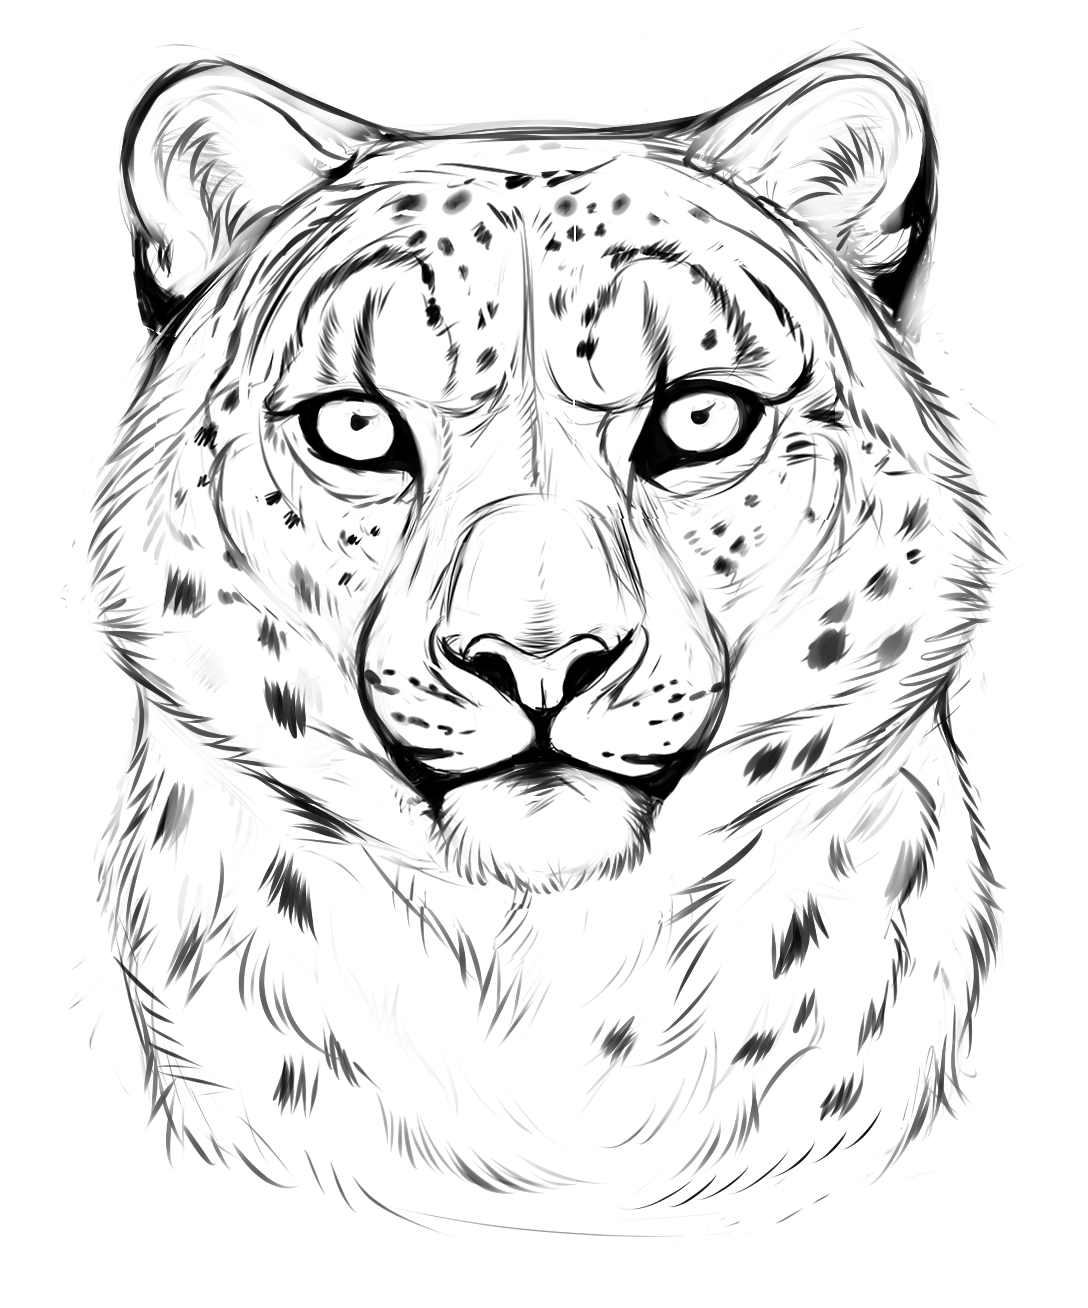 Tiger Pencil Drawing At Getdrawings Com Free For Personal Use